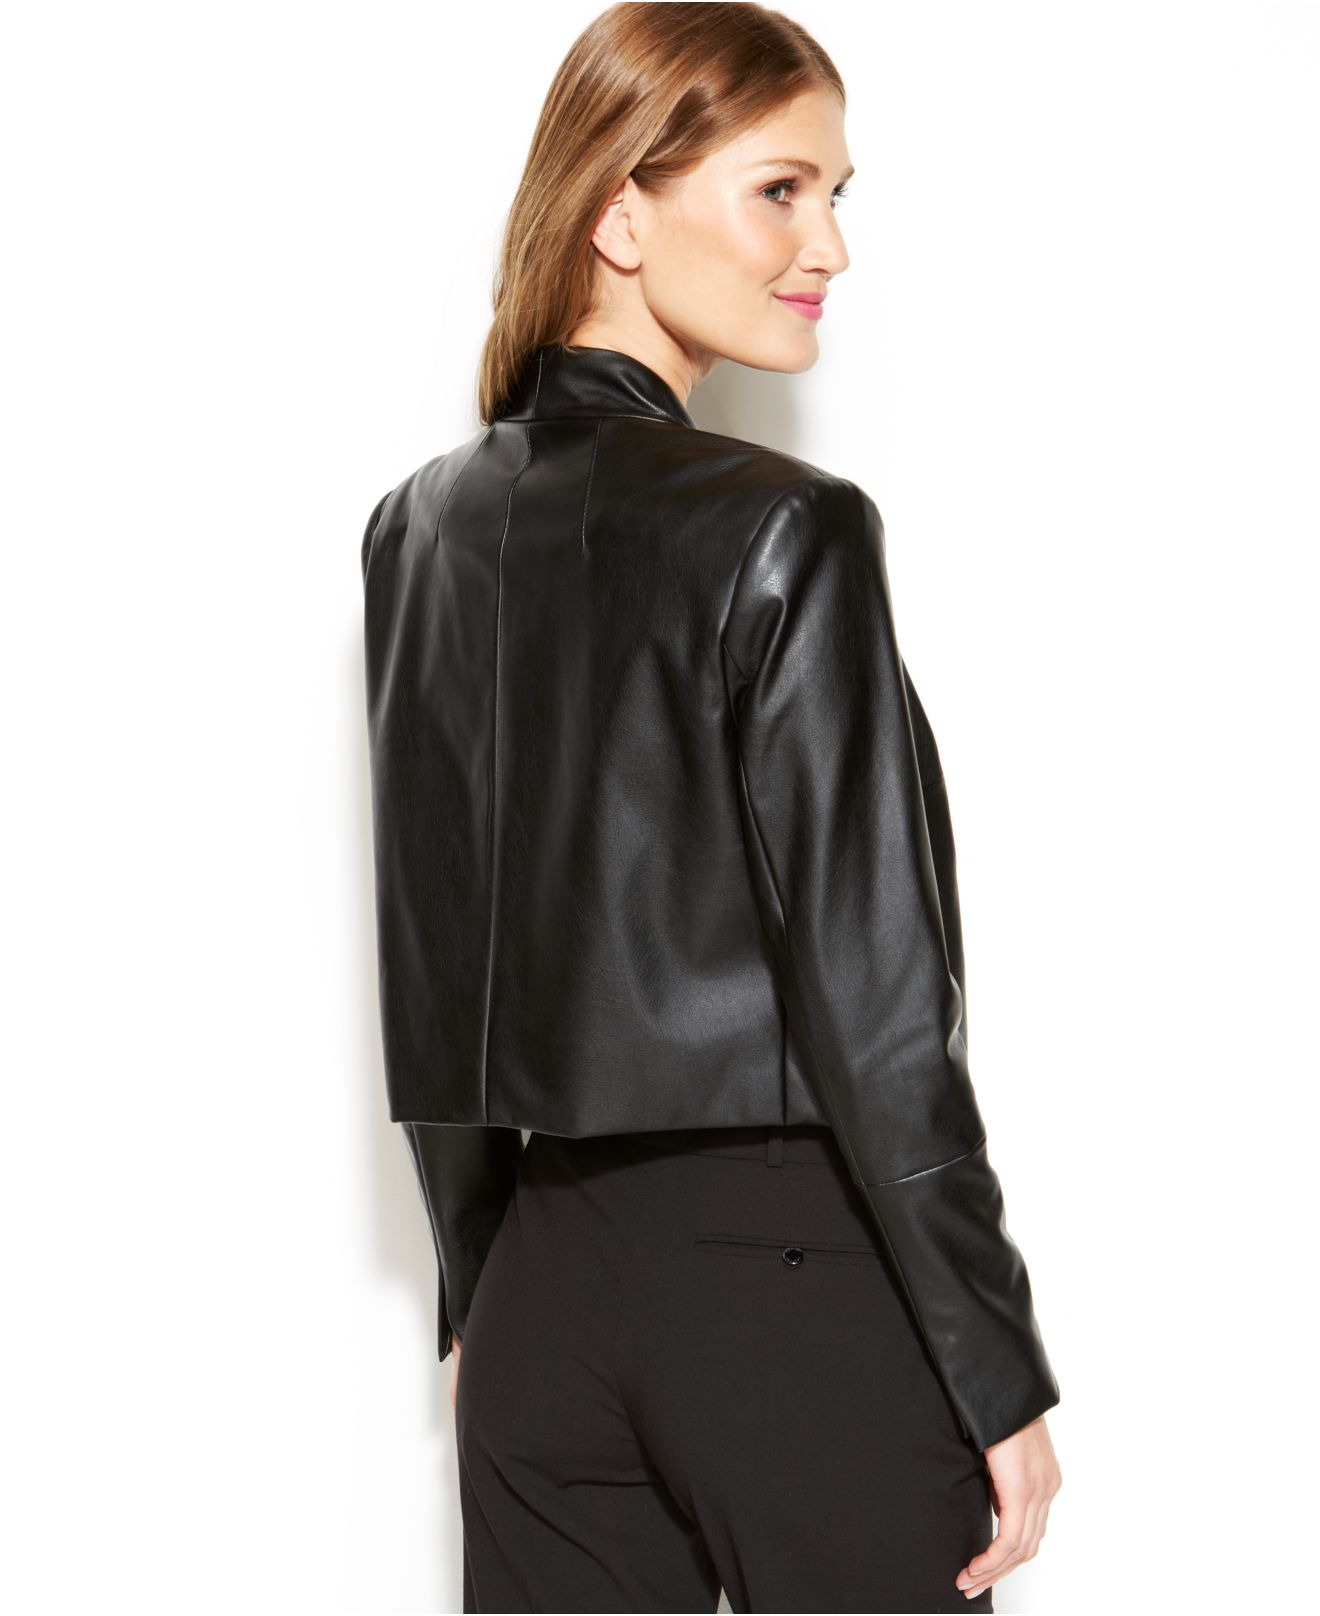 Fake black leather jacket